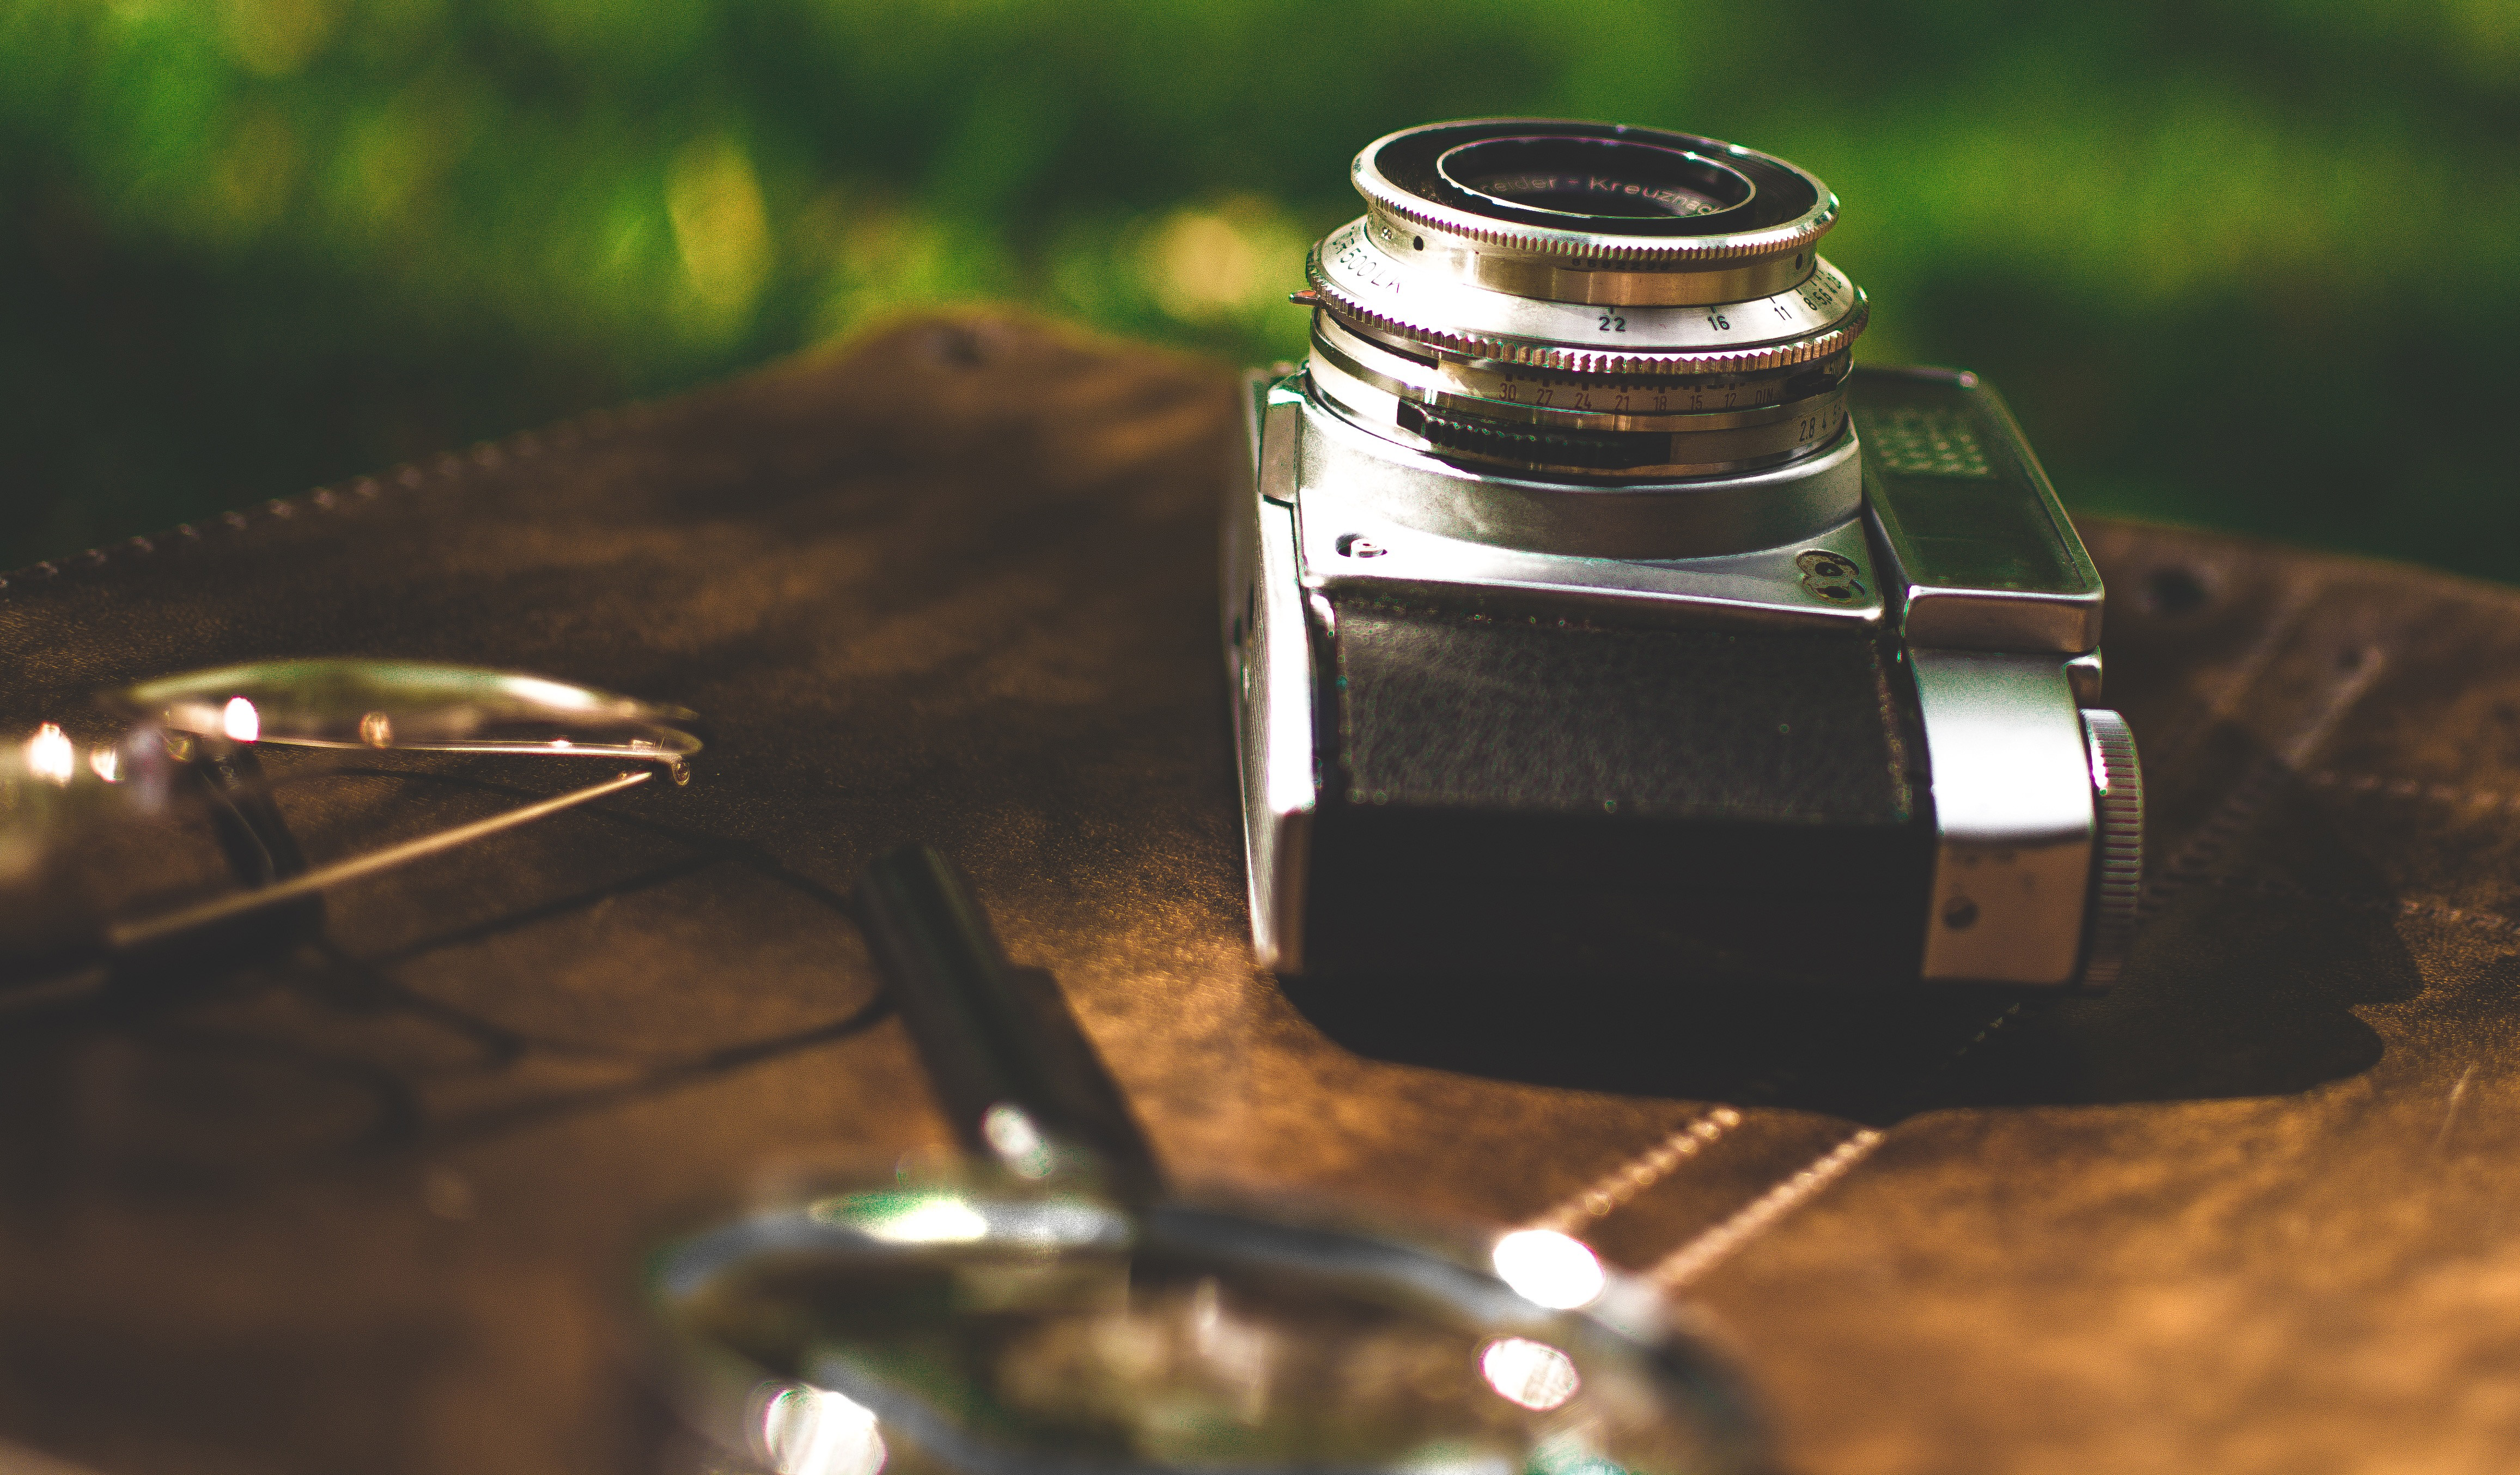 Camera Vintage Android : Retro old camera magnifying glass hd photography k wallpapers